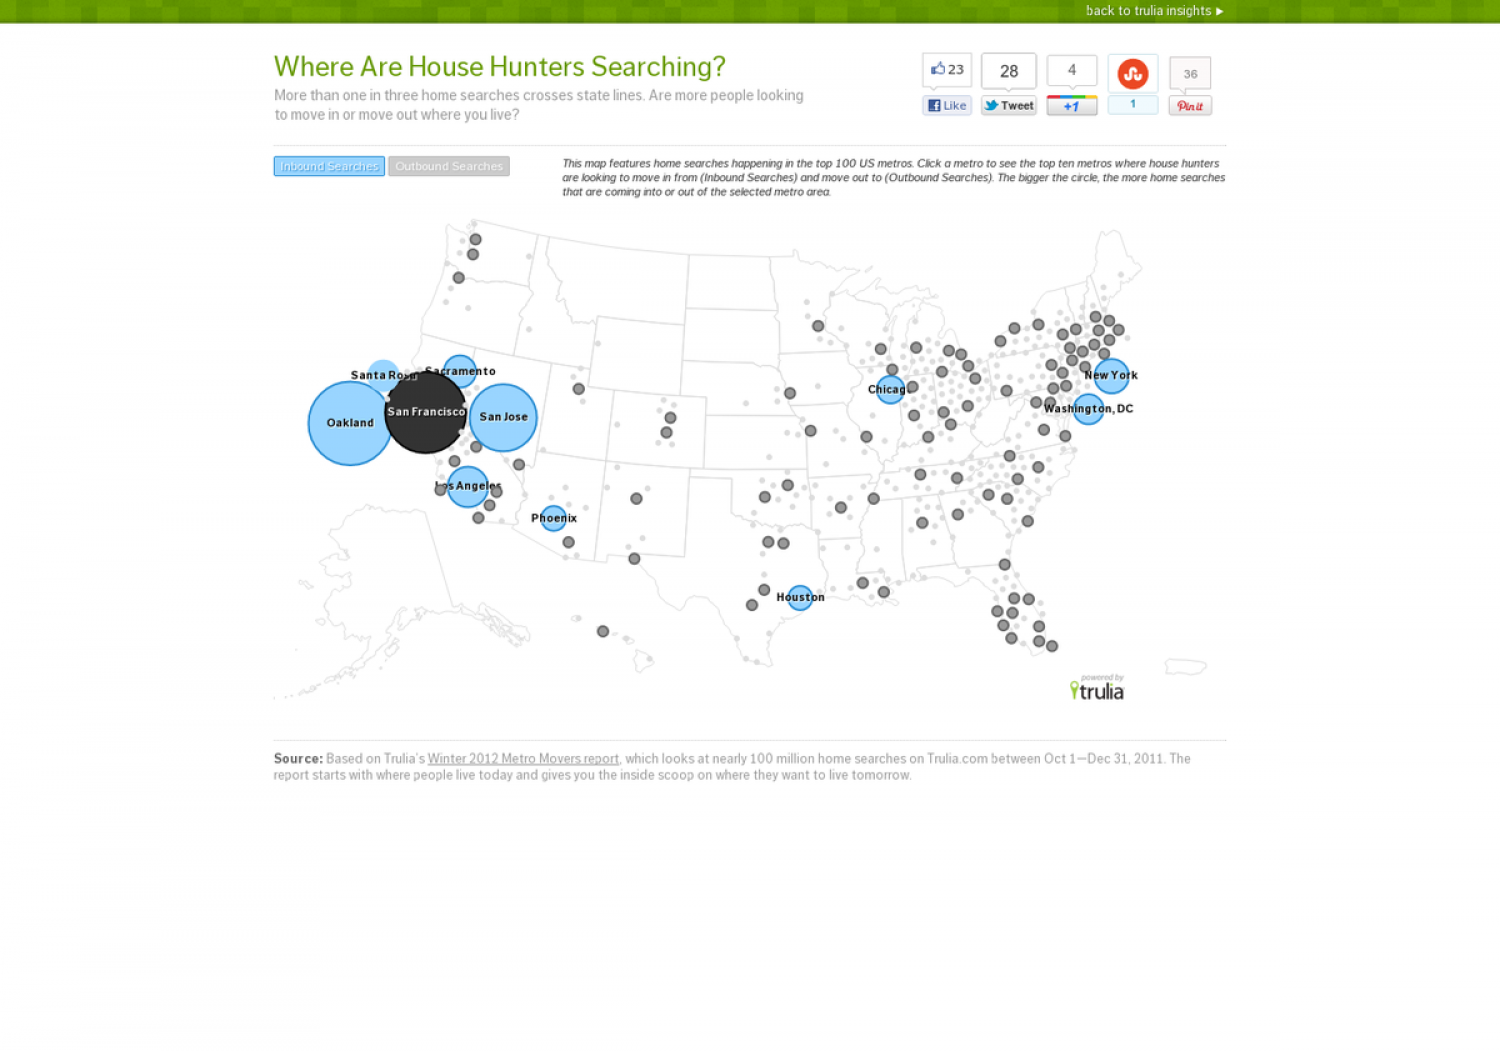 Where Are House Hunters Searching? Infographic